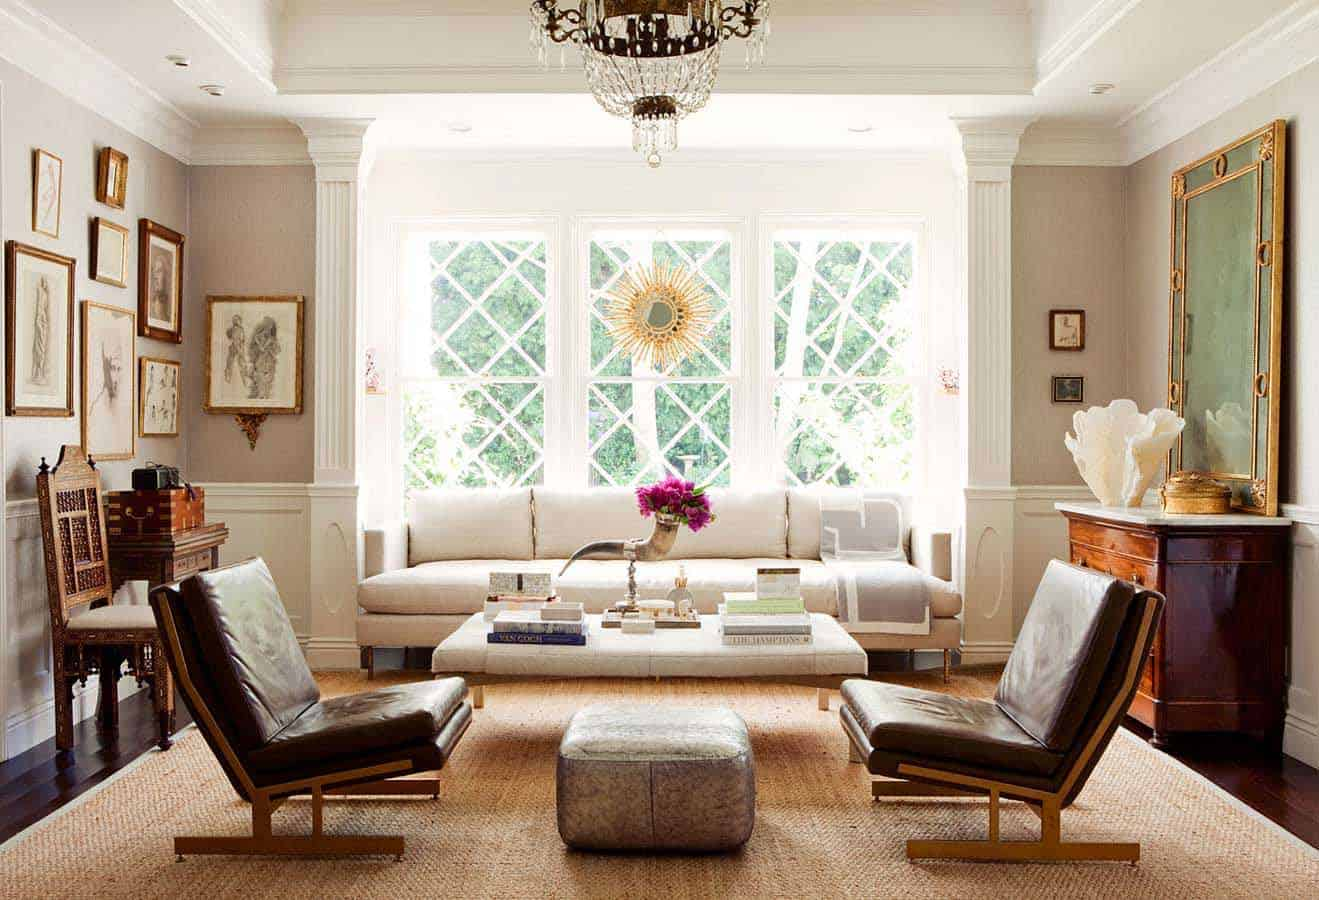 Arranging living room furniture kristina wolf design for Family room arrangements